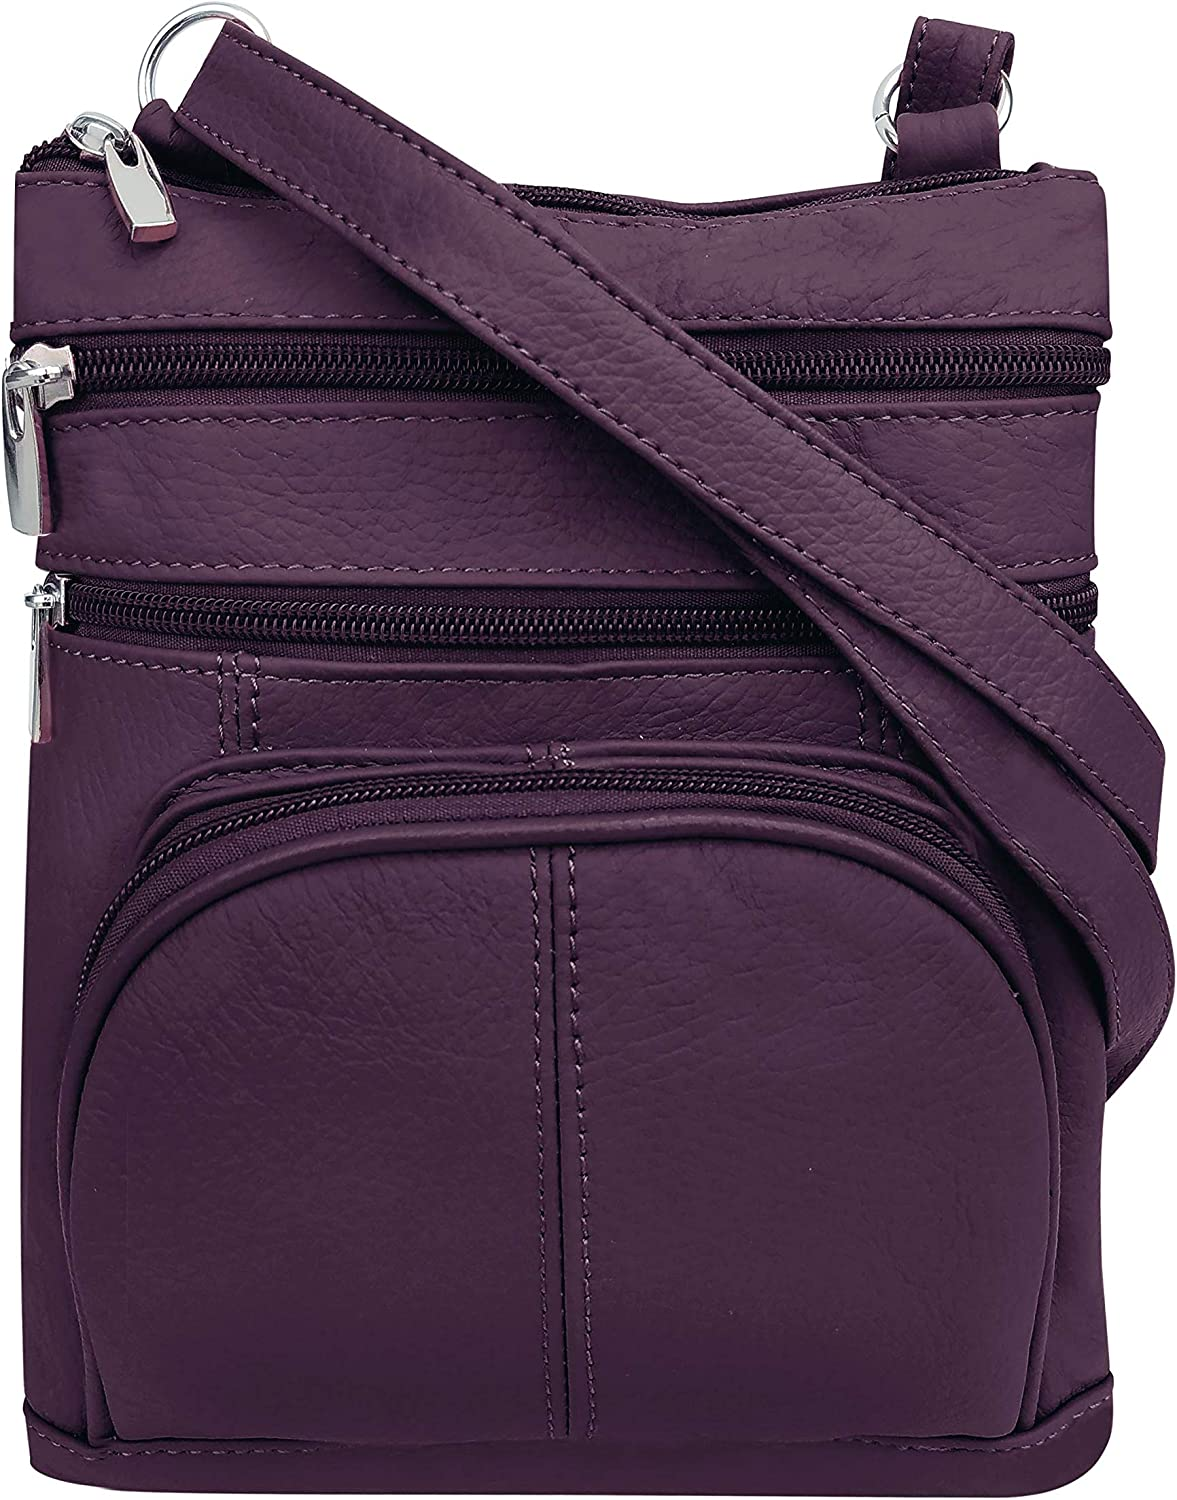 Roma Leathers Crossbody Zippered Purse - 3 Front Pockets, Adjustable Strap